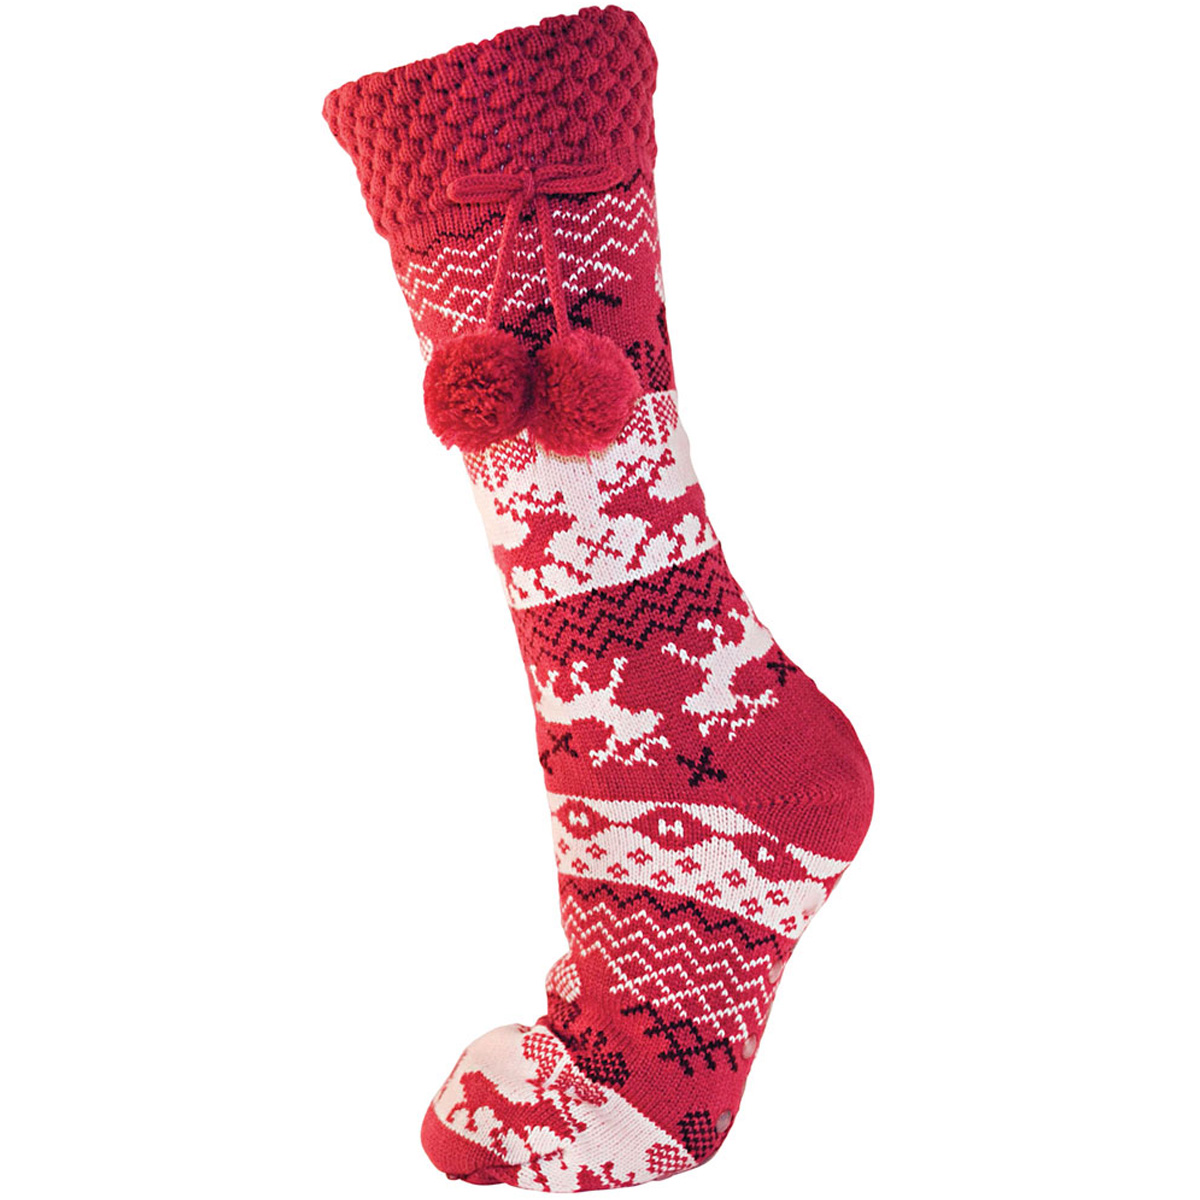 15 Knitted Slipper Sock Patterns. Courtney Constable. Warm Knitted Boot Cuff Patterns for Fall. Go to gallery. Living 15 Simple Valentine's Day Knitting Patterns. Go to gallery. Kids Adorable Knitted Baby Booties That Make Perfect Shower Gifts. Go to gallery. Fashion.